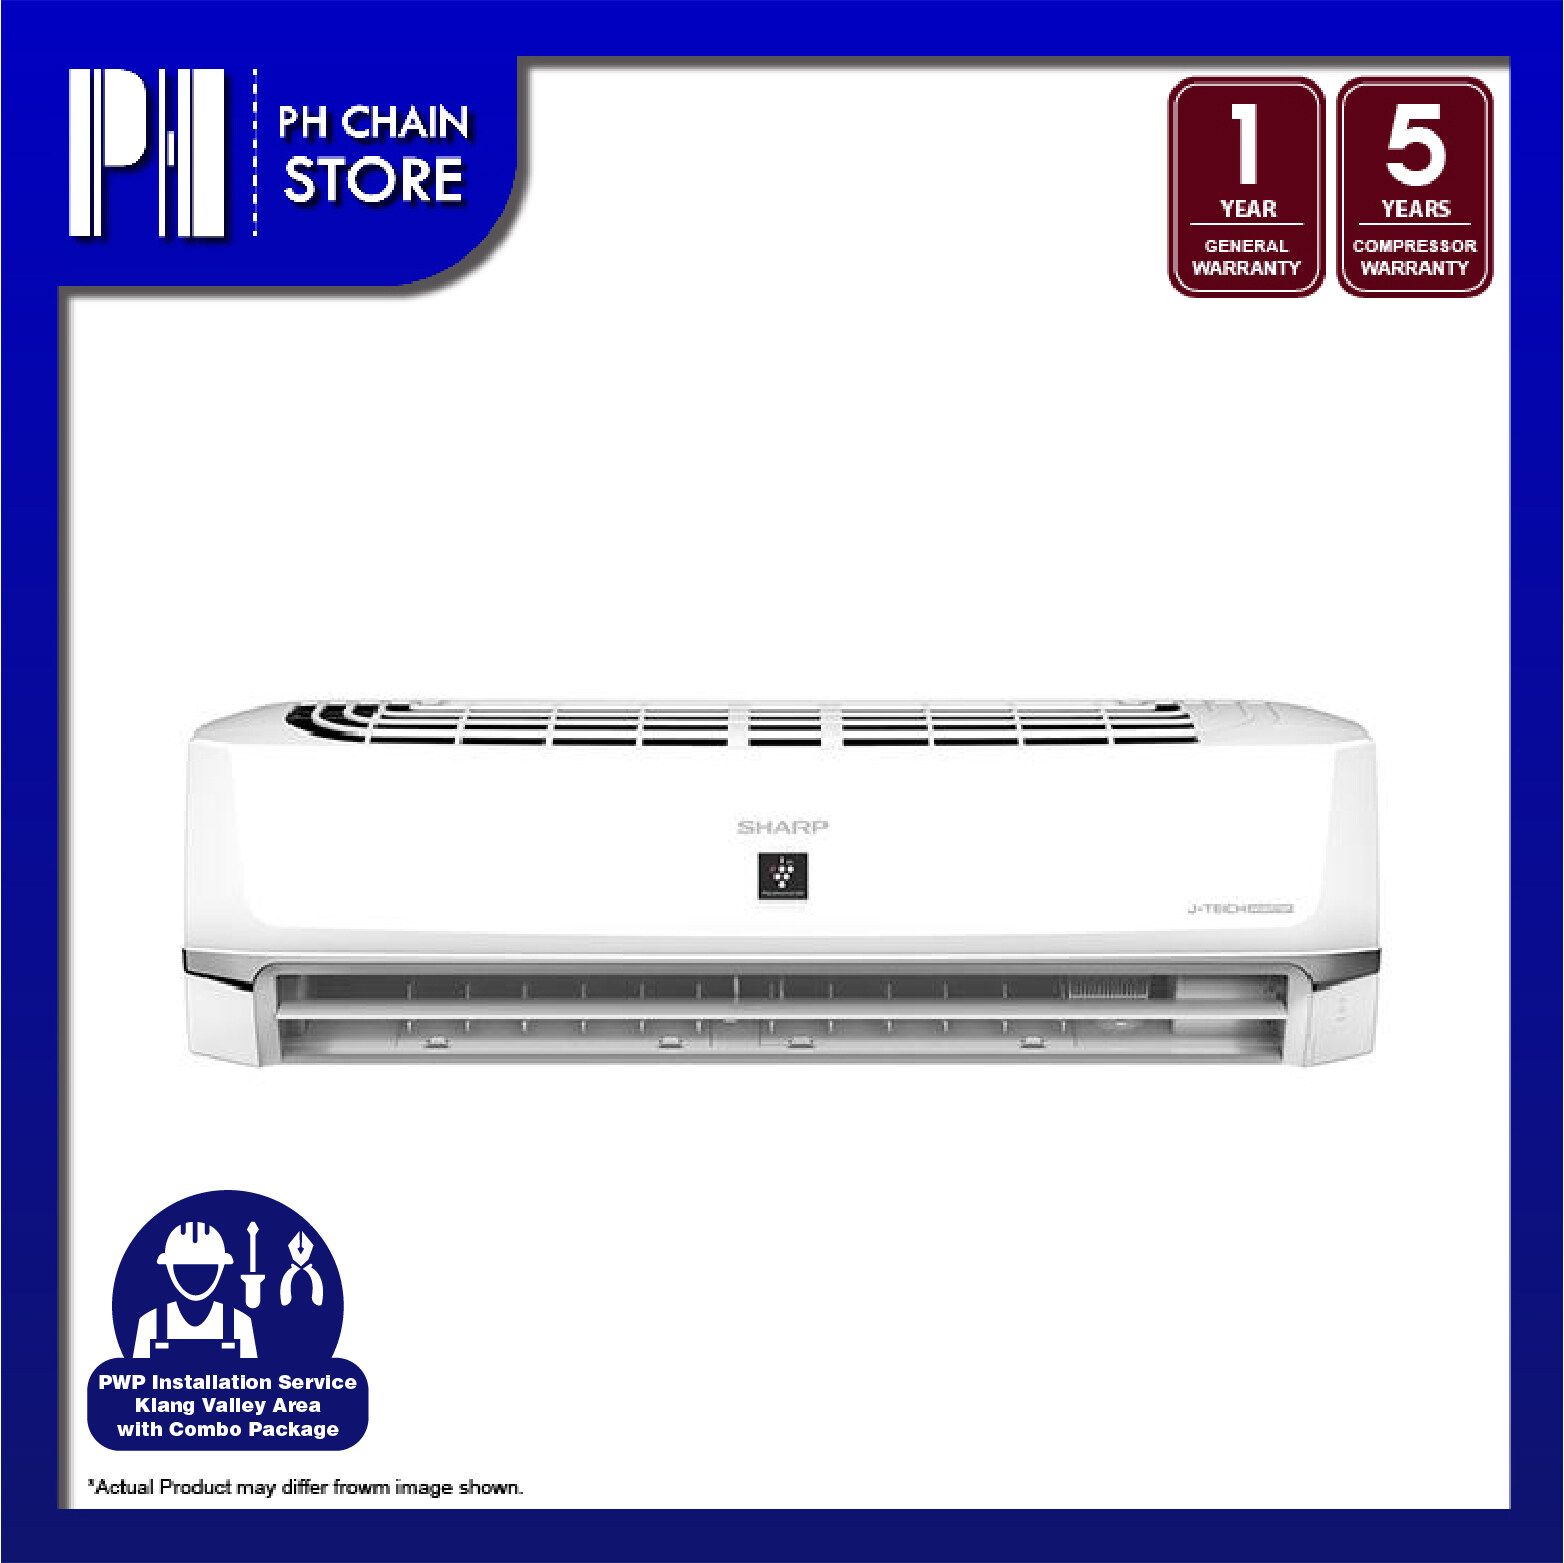 SHARP AHXP24WHD/AUX24WHD 2.5HP J-TECH INVERTER AIR CONDITIONER